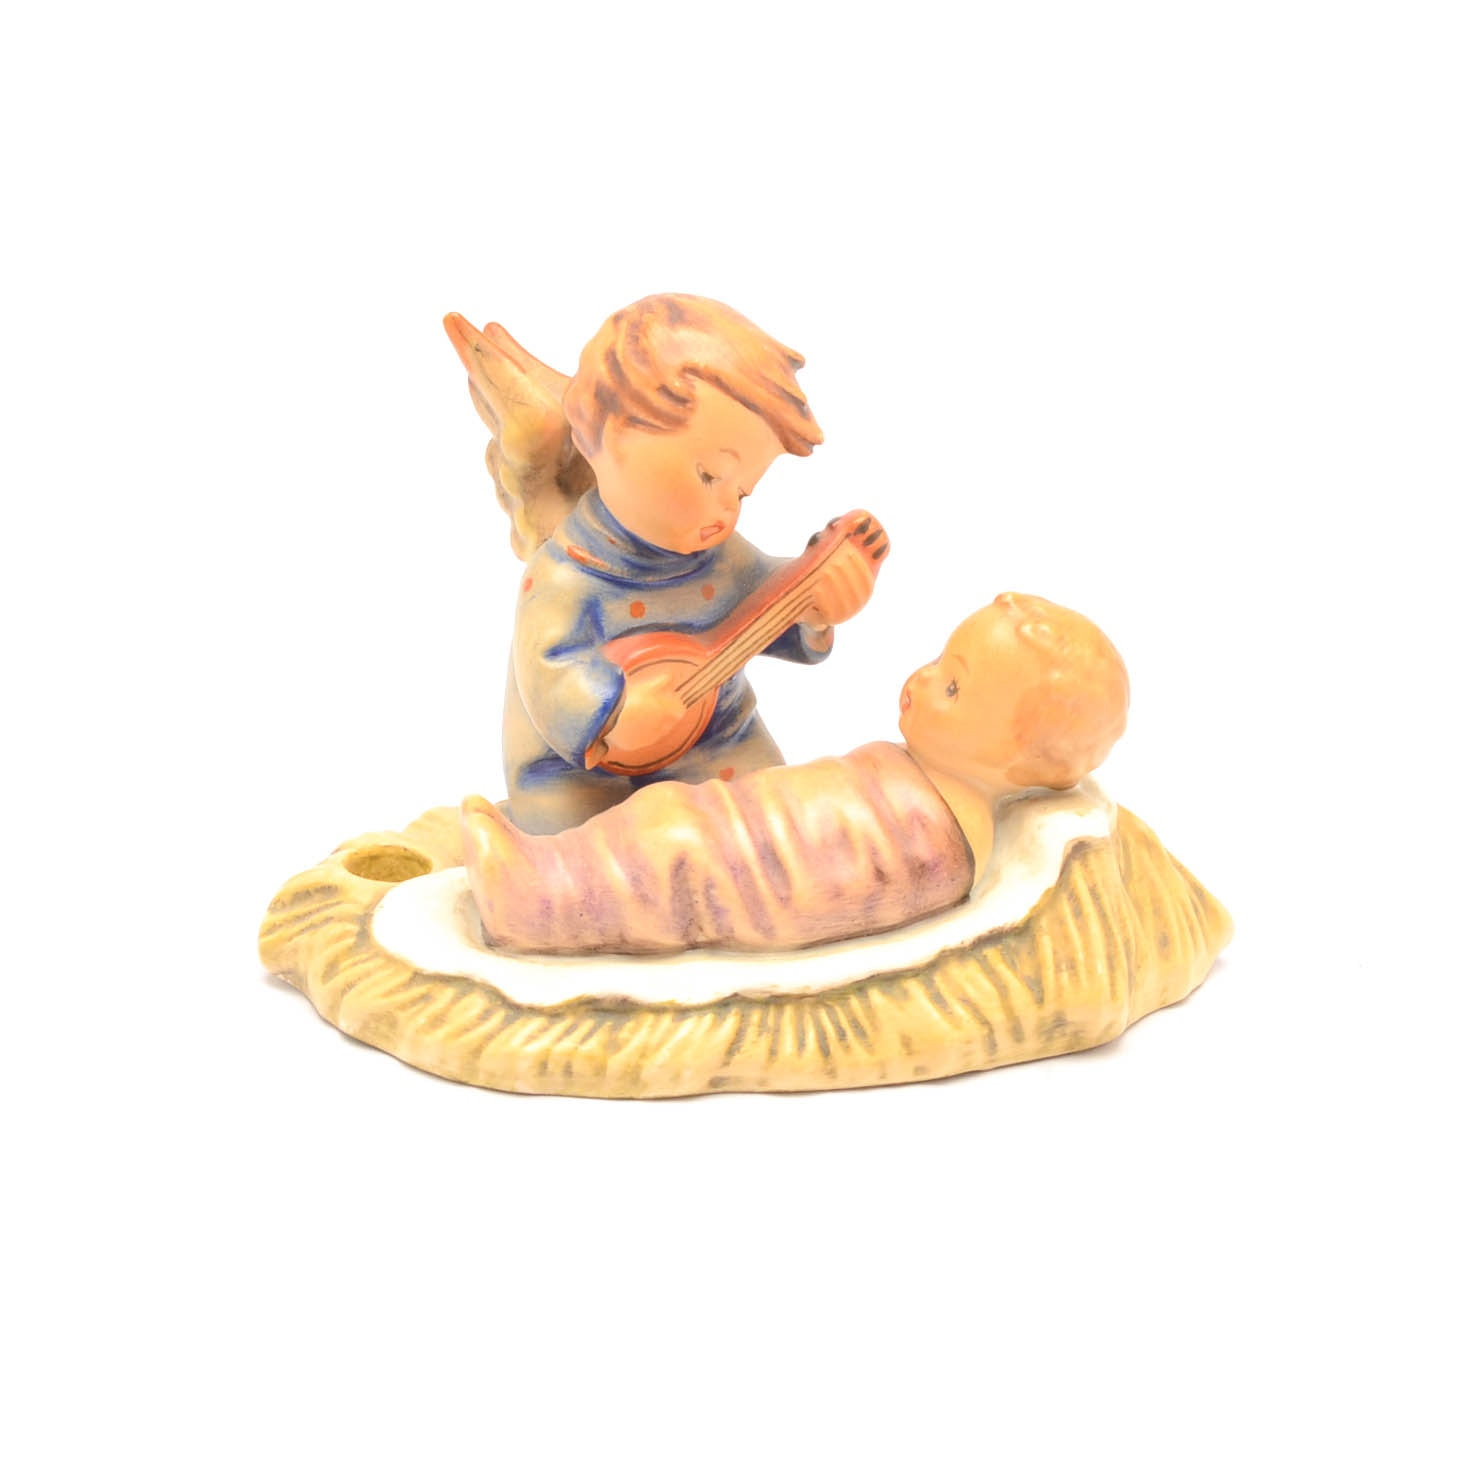 Vintage Hummel Goebel Figurine Lullaby Singing Angel With Baby Jesus